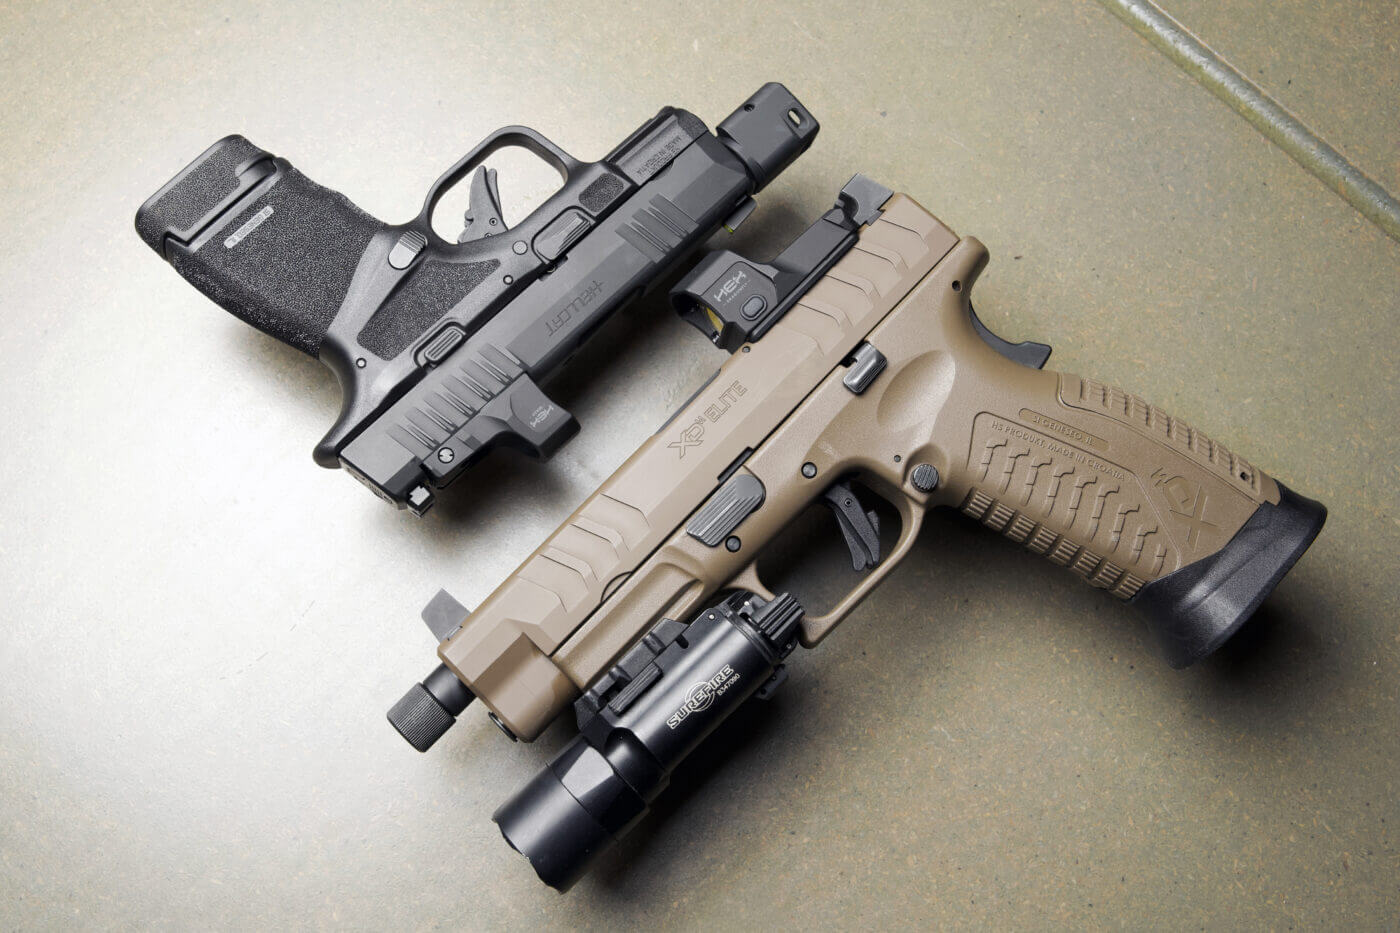 Springfield Armory pistols with HEX red dots